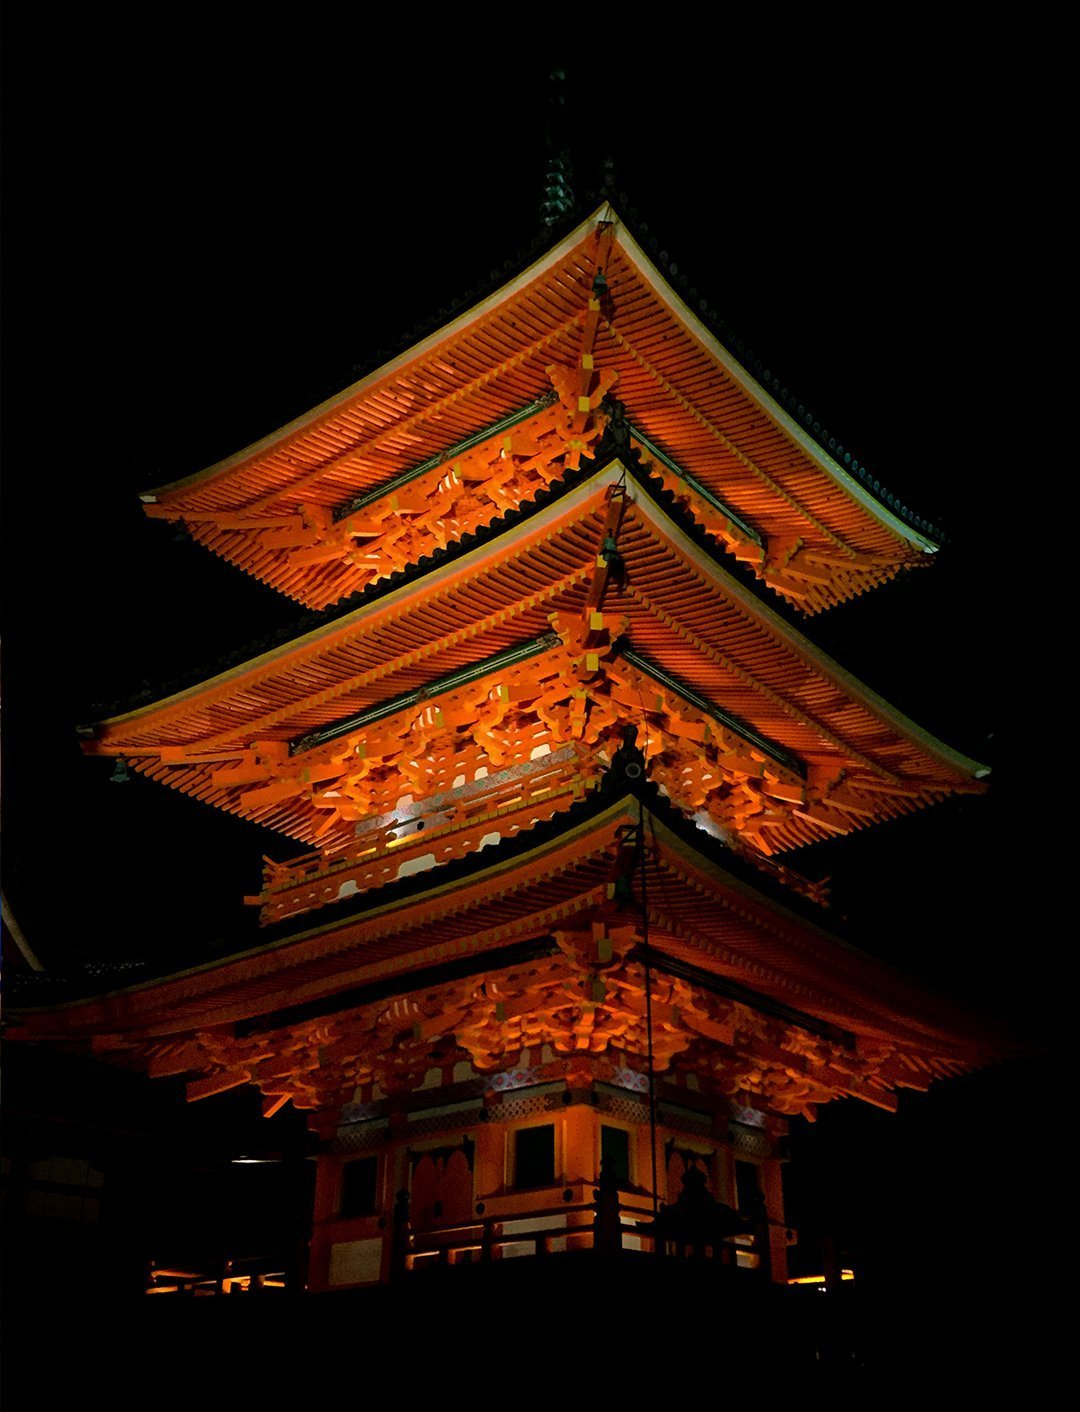 Kyyomizu-Dera-Temple007 Kyomizu Dera  -  Kyoto, Japan Japan Kyoto  Temple Kyoto Japan Feature Architechture